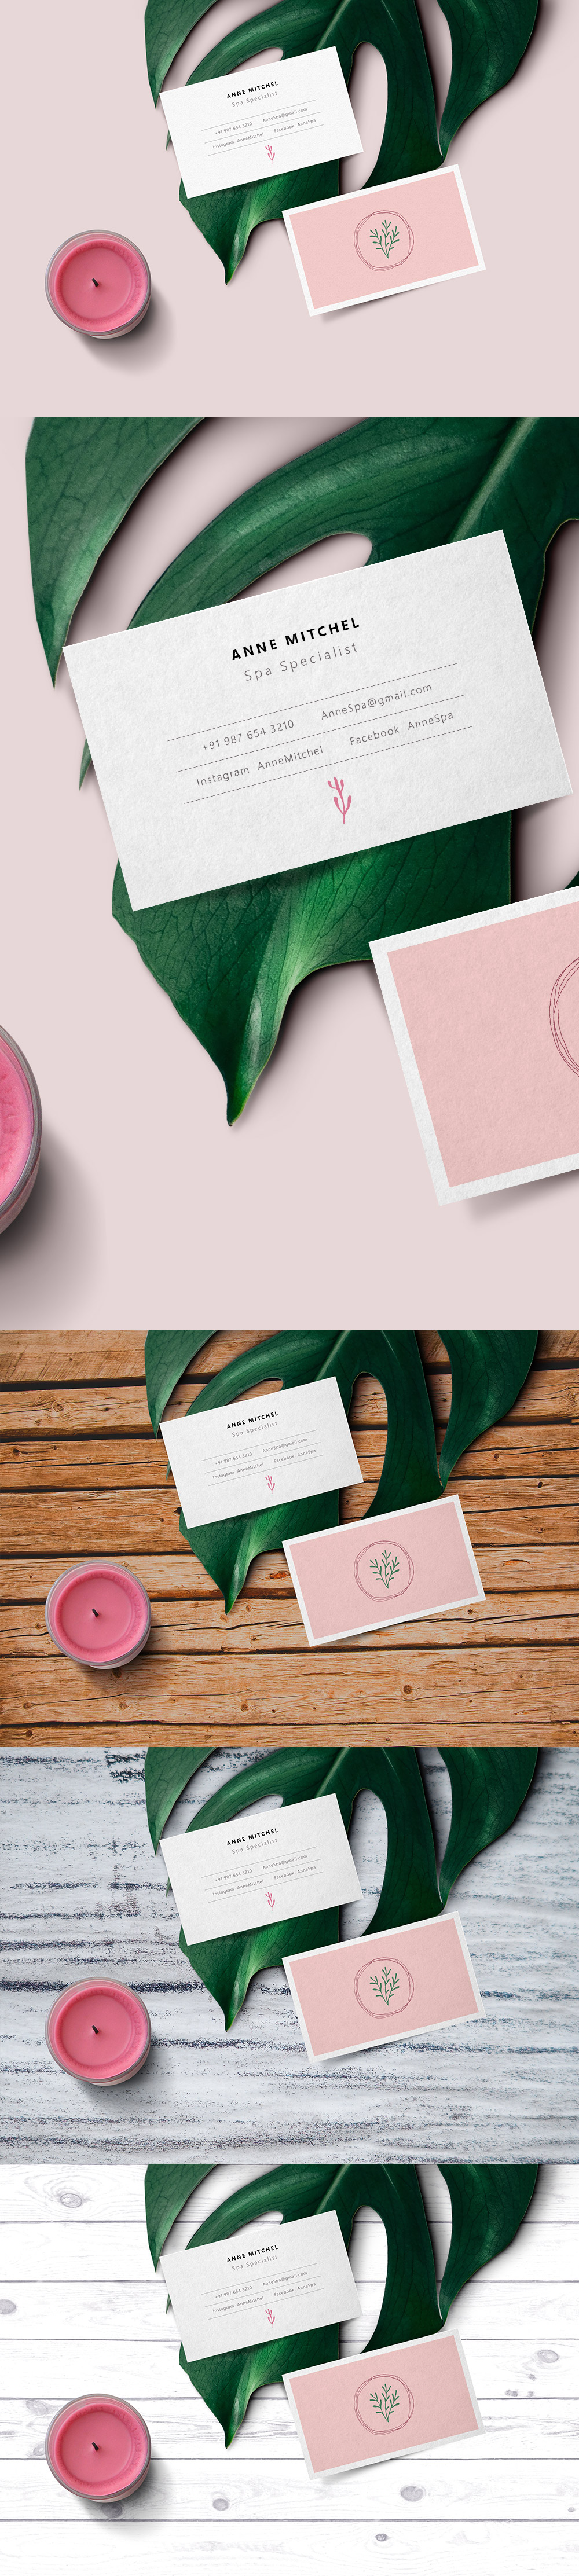 Feminine Business Card Mockup